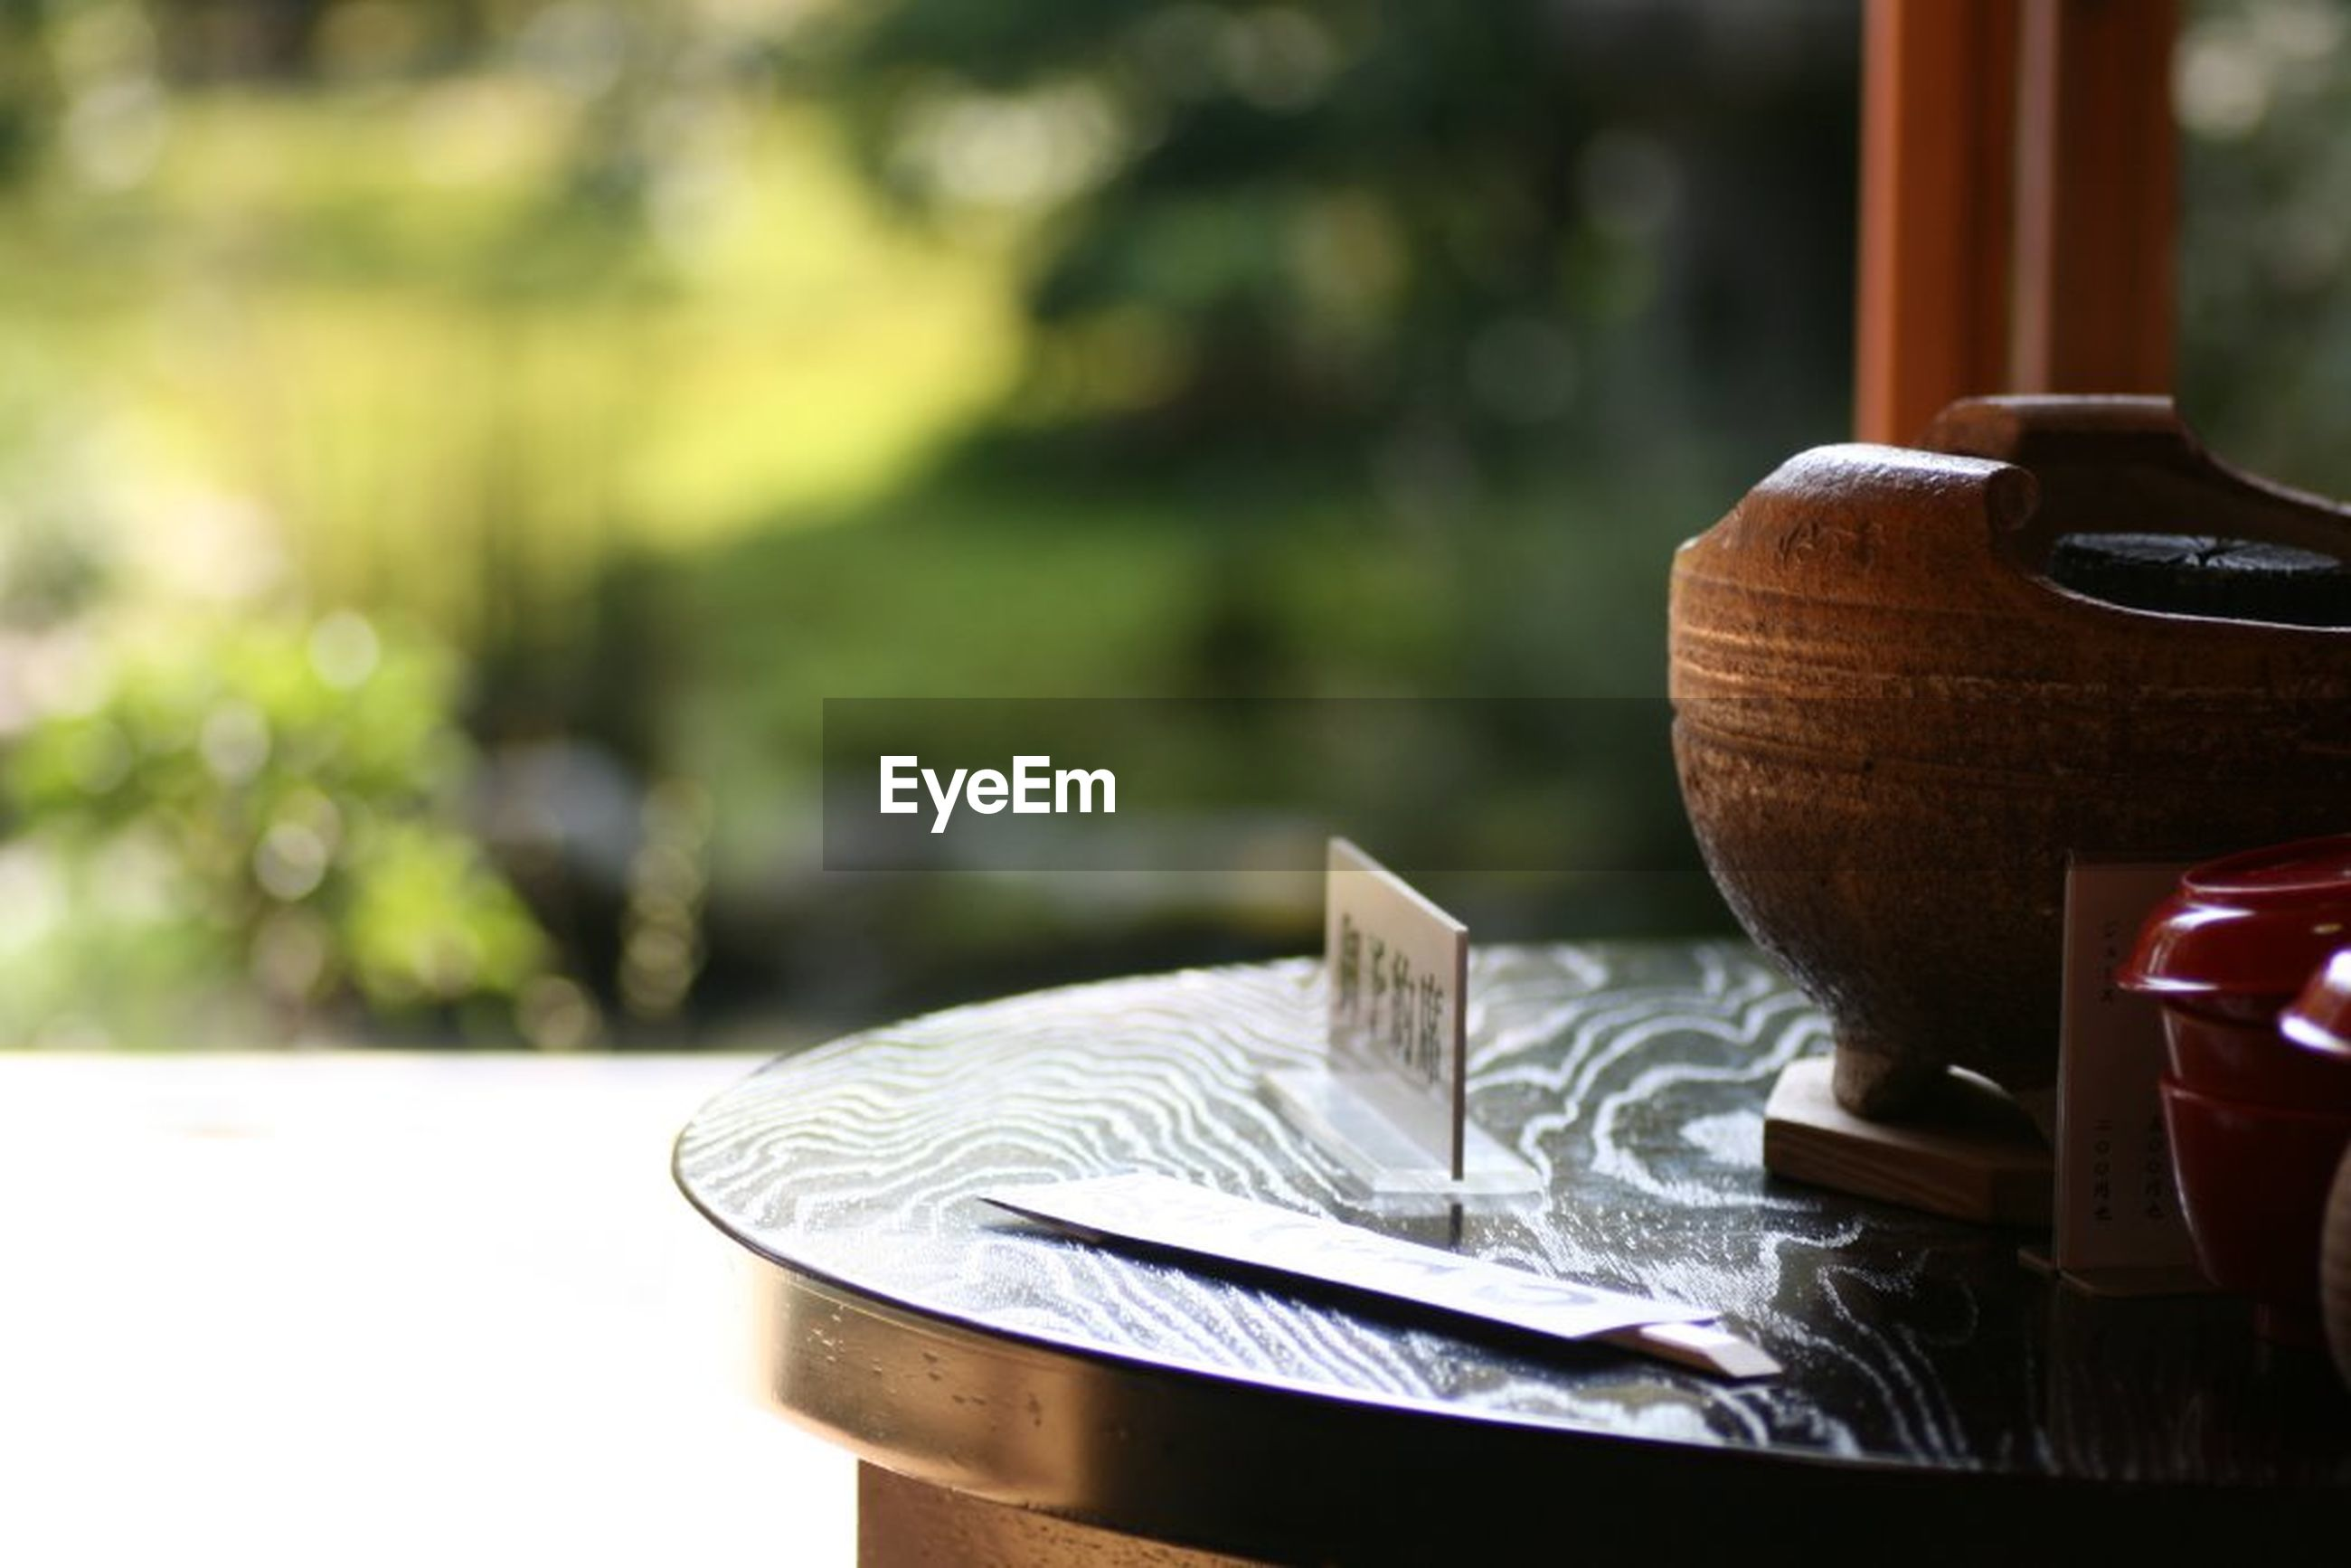 focus on foreground, no people, table, day, outdoors, close-up, nature